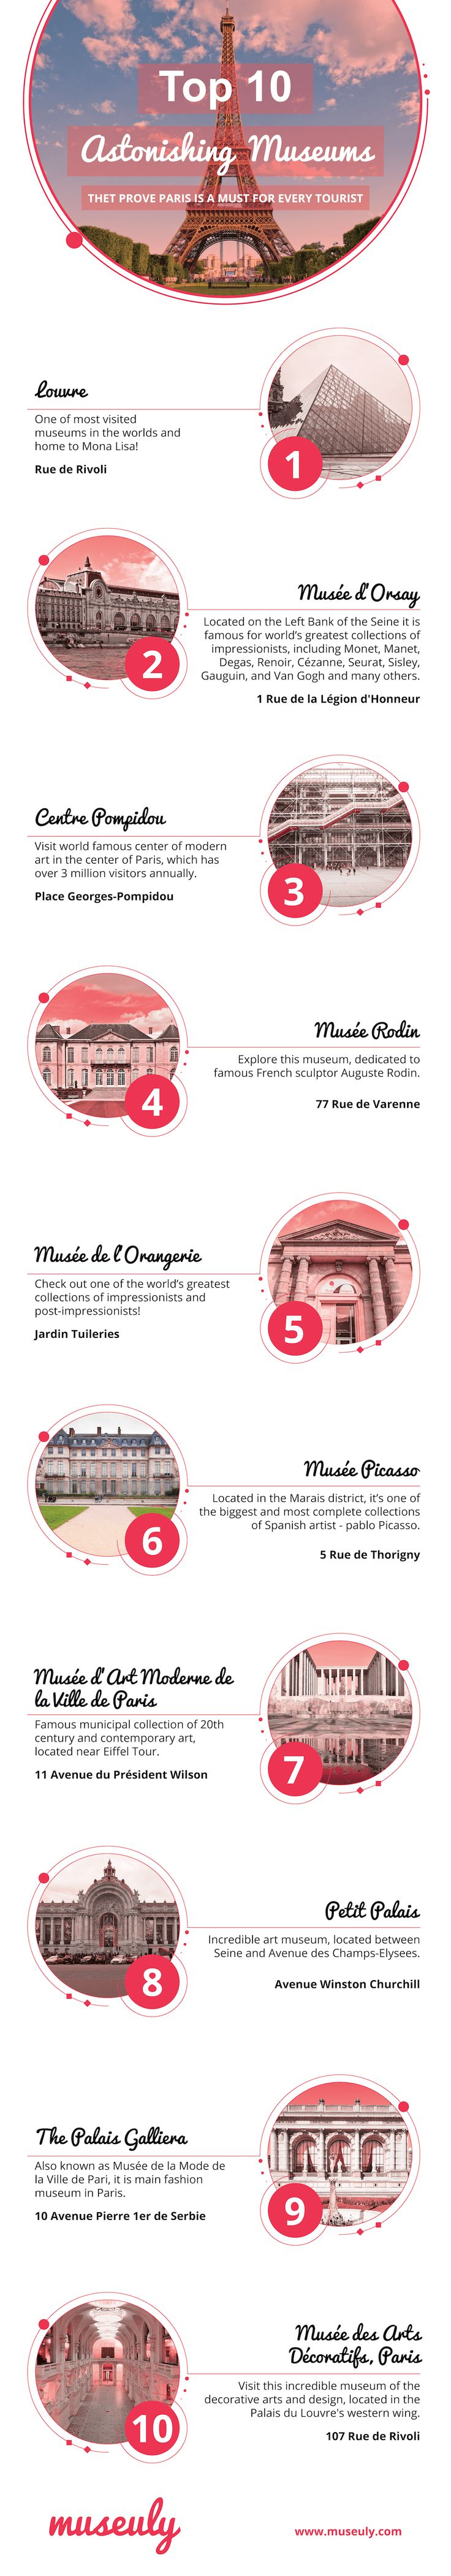 Infographic - top 10 Paris museums tickets, hours, prices  paris things to do  things to do in paris  things to do on paris  things to do with paris  best things to do in paris  things to do paris france  fun things to do in paris  top 10 things to do in paris  things to do in disneyland paris  disneyland paris things to do  paris things to do tripadvisor  things to do around paris  things to do in paris with tweens  things to do in paris with a child